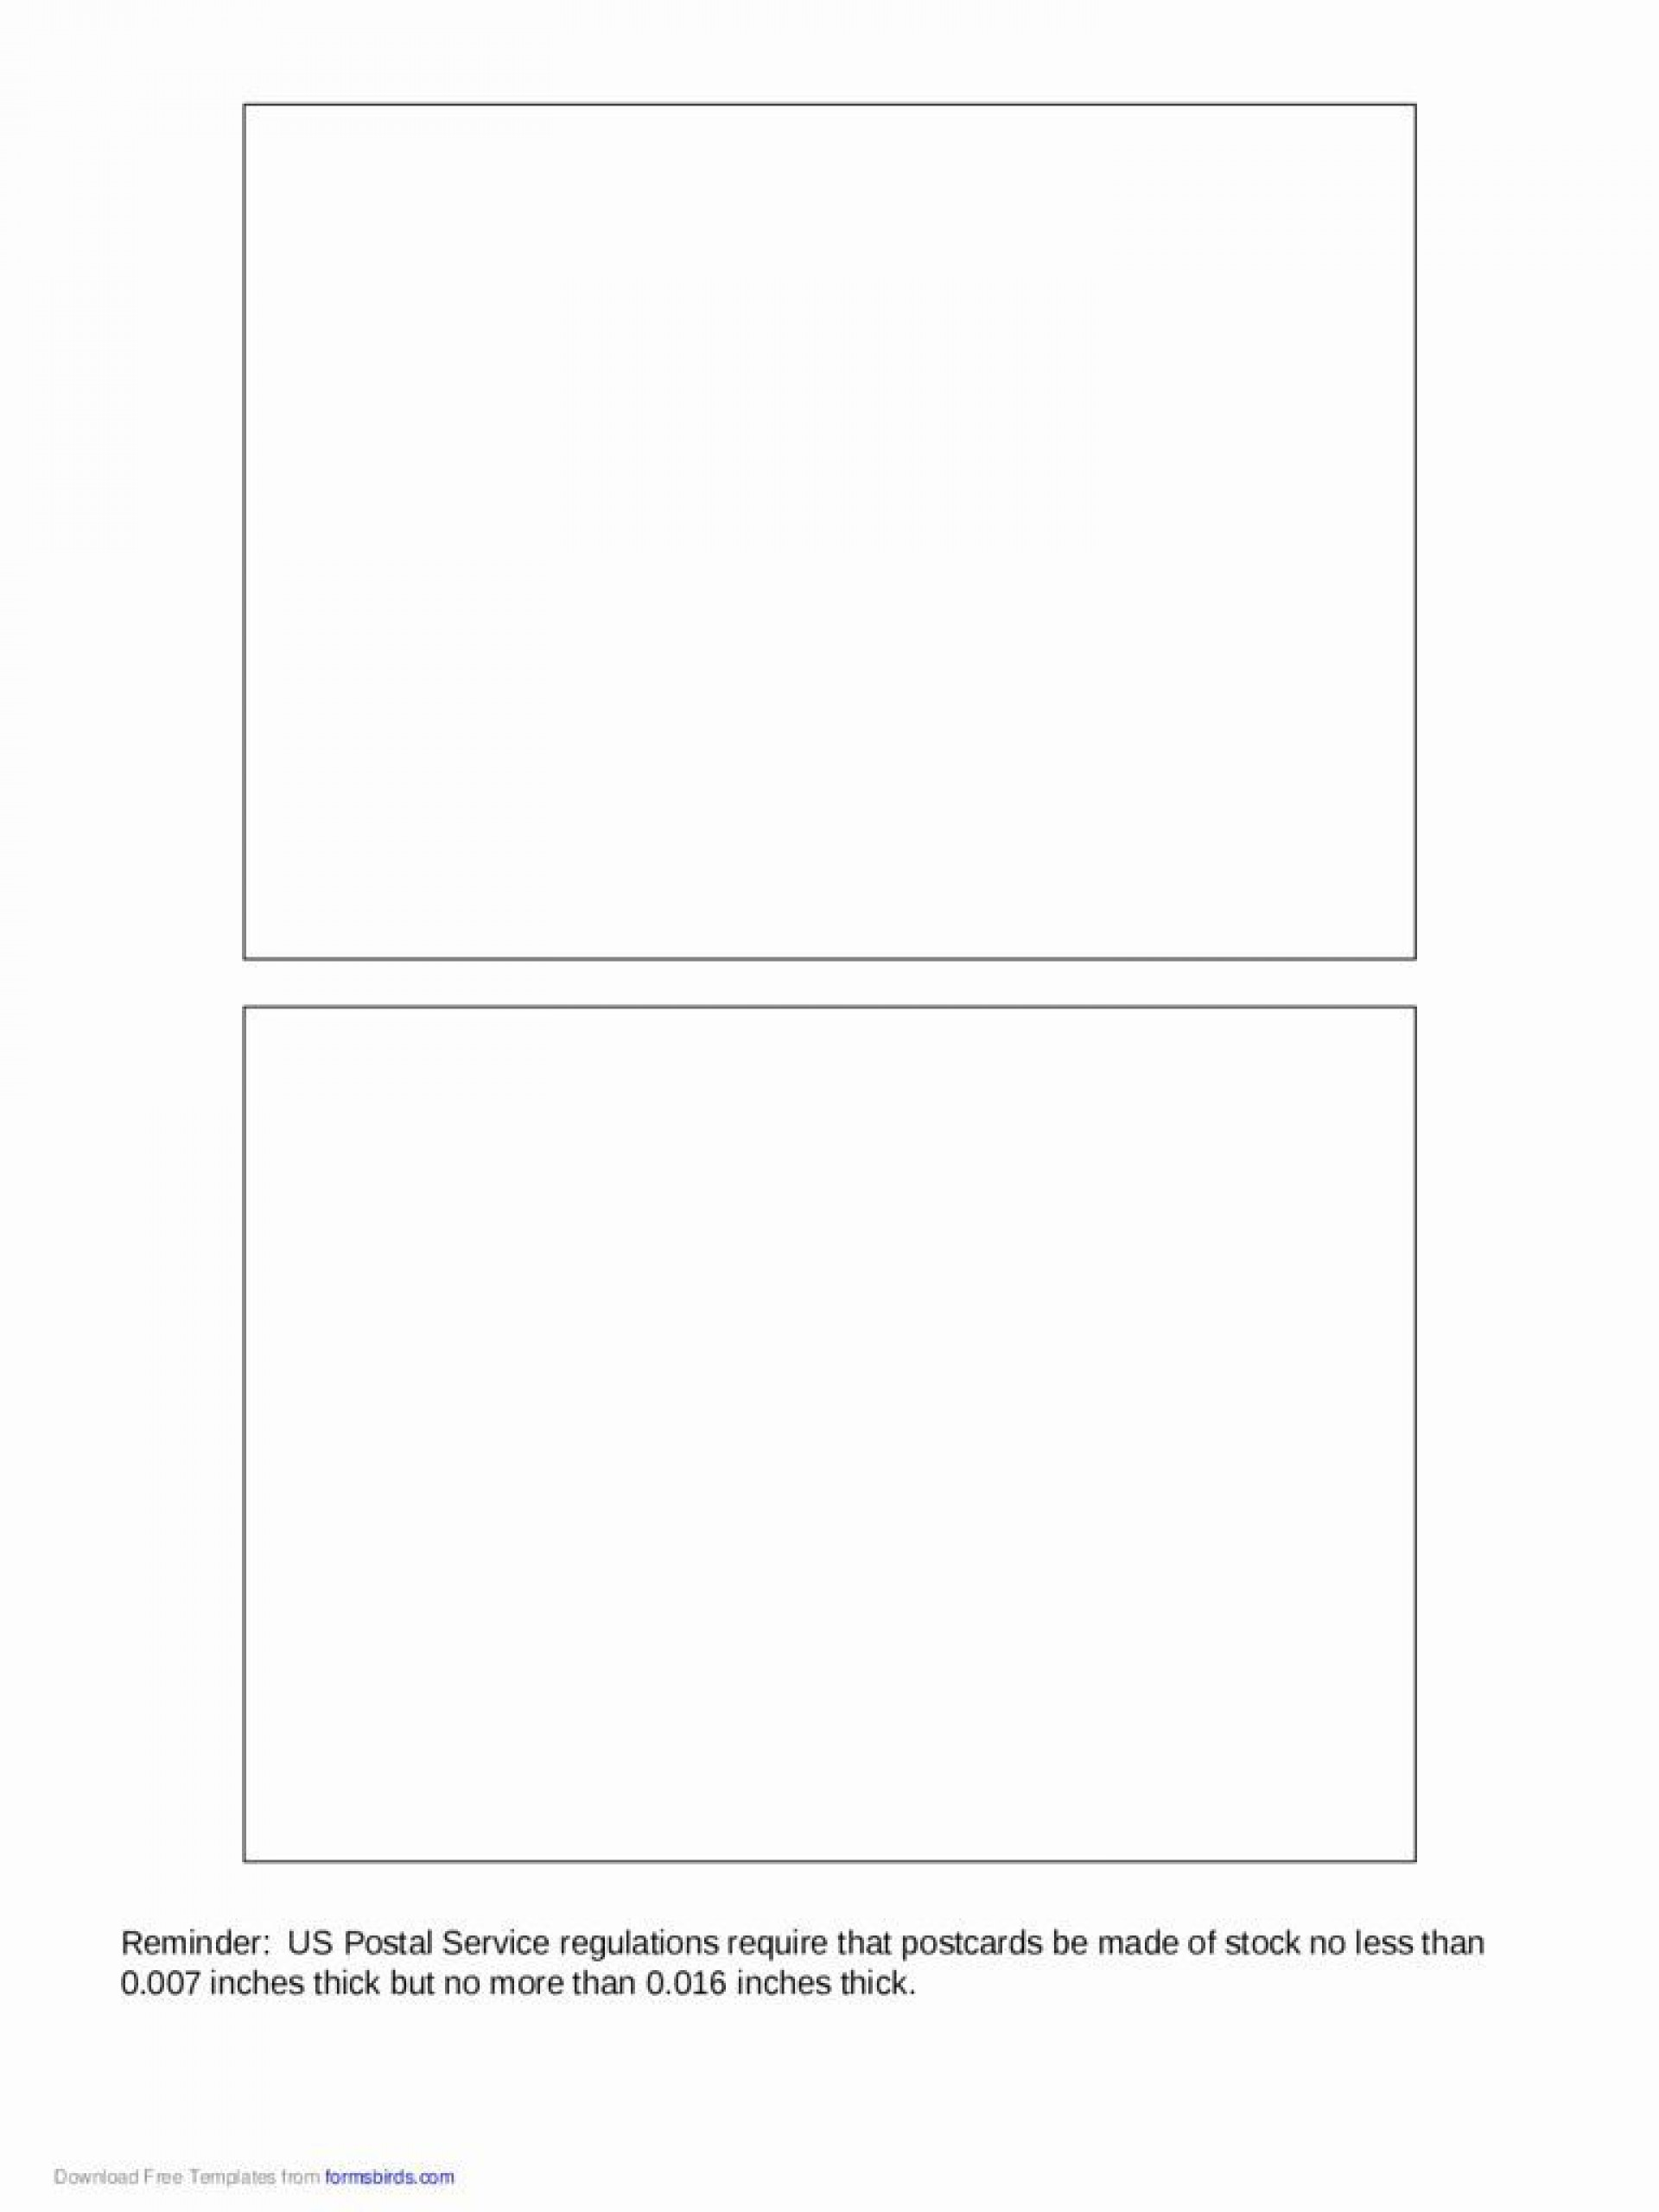 003 Fantastic 5 X 7 Postcard Template Microsoft Word Photo 1920